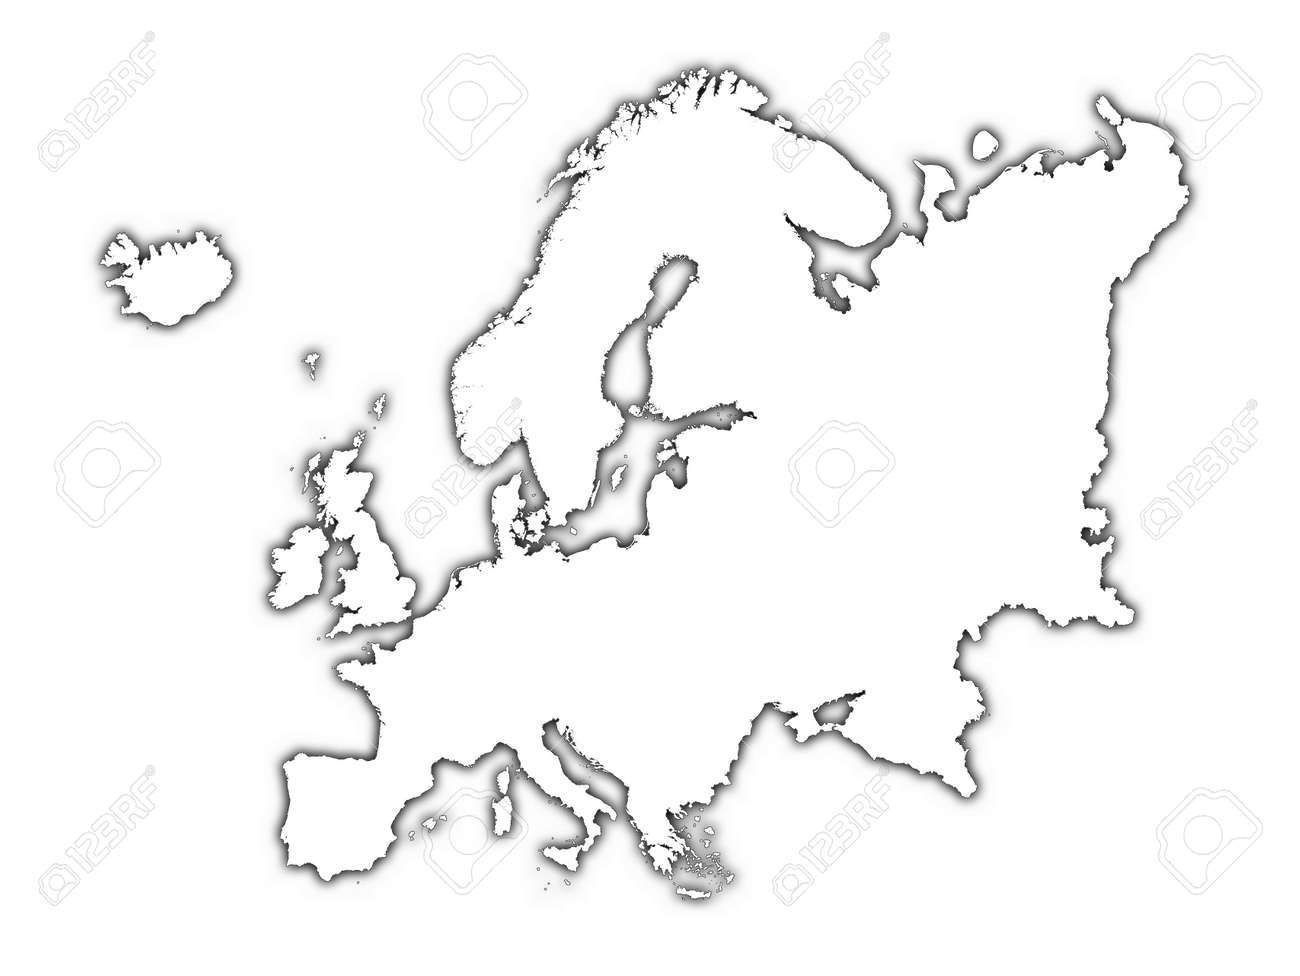 europe outline map with shadow detailed mercator projection